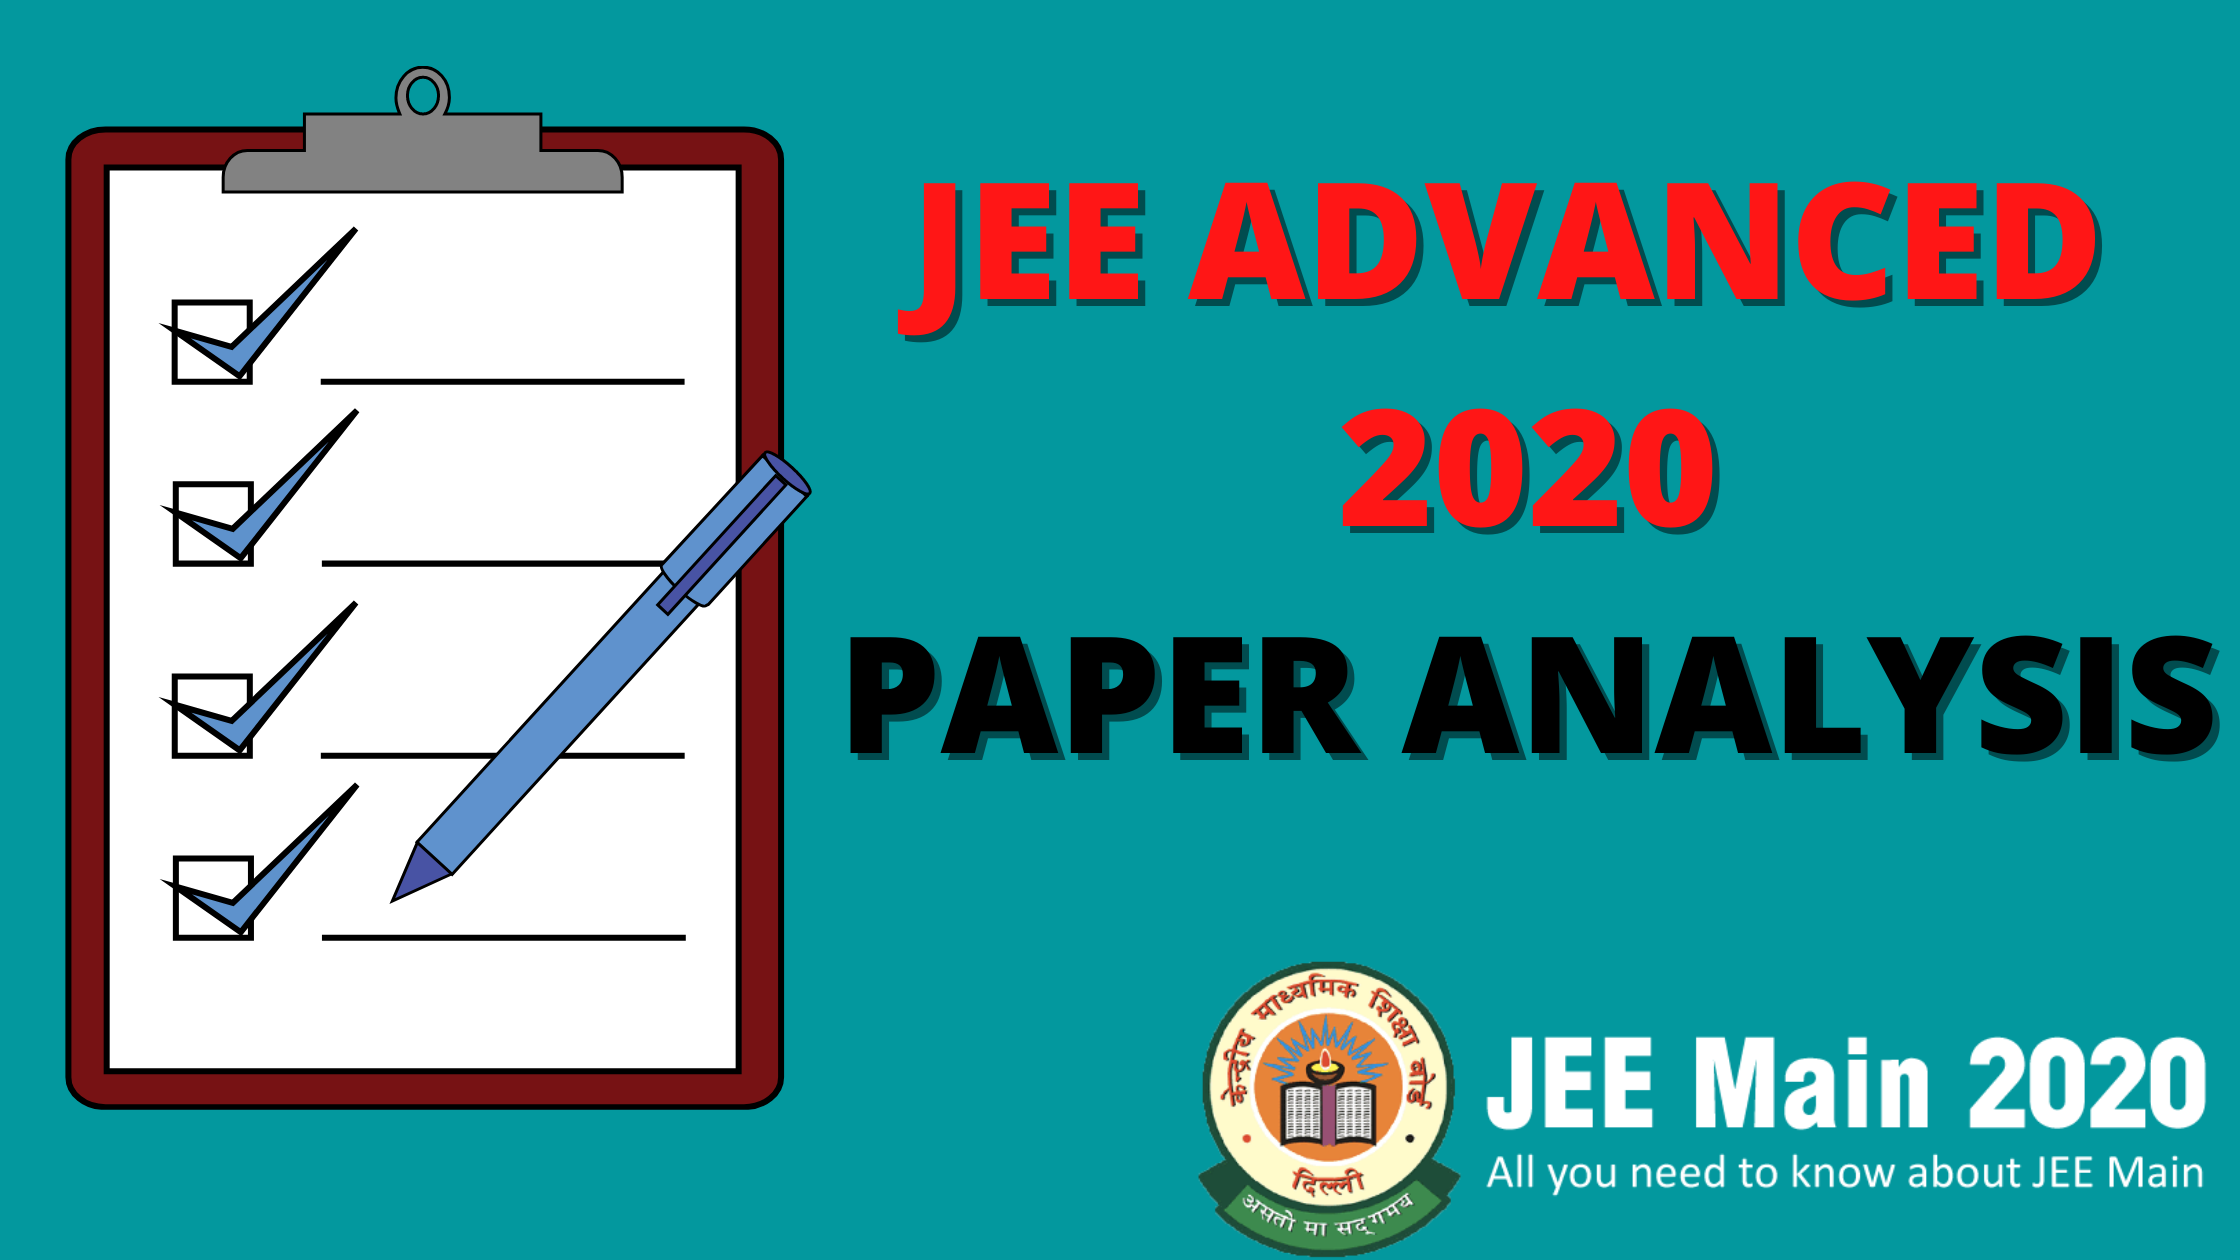 JEE ADVANCED 2020 Paper Analysis